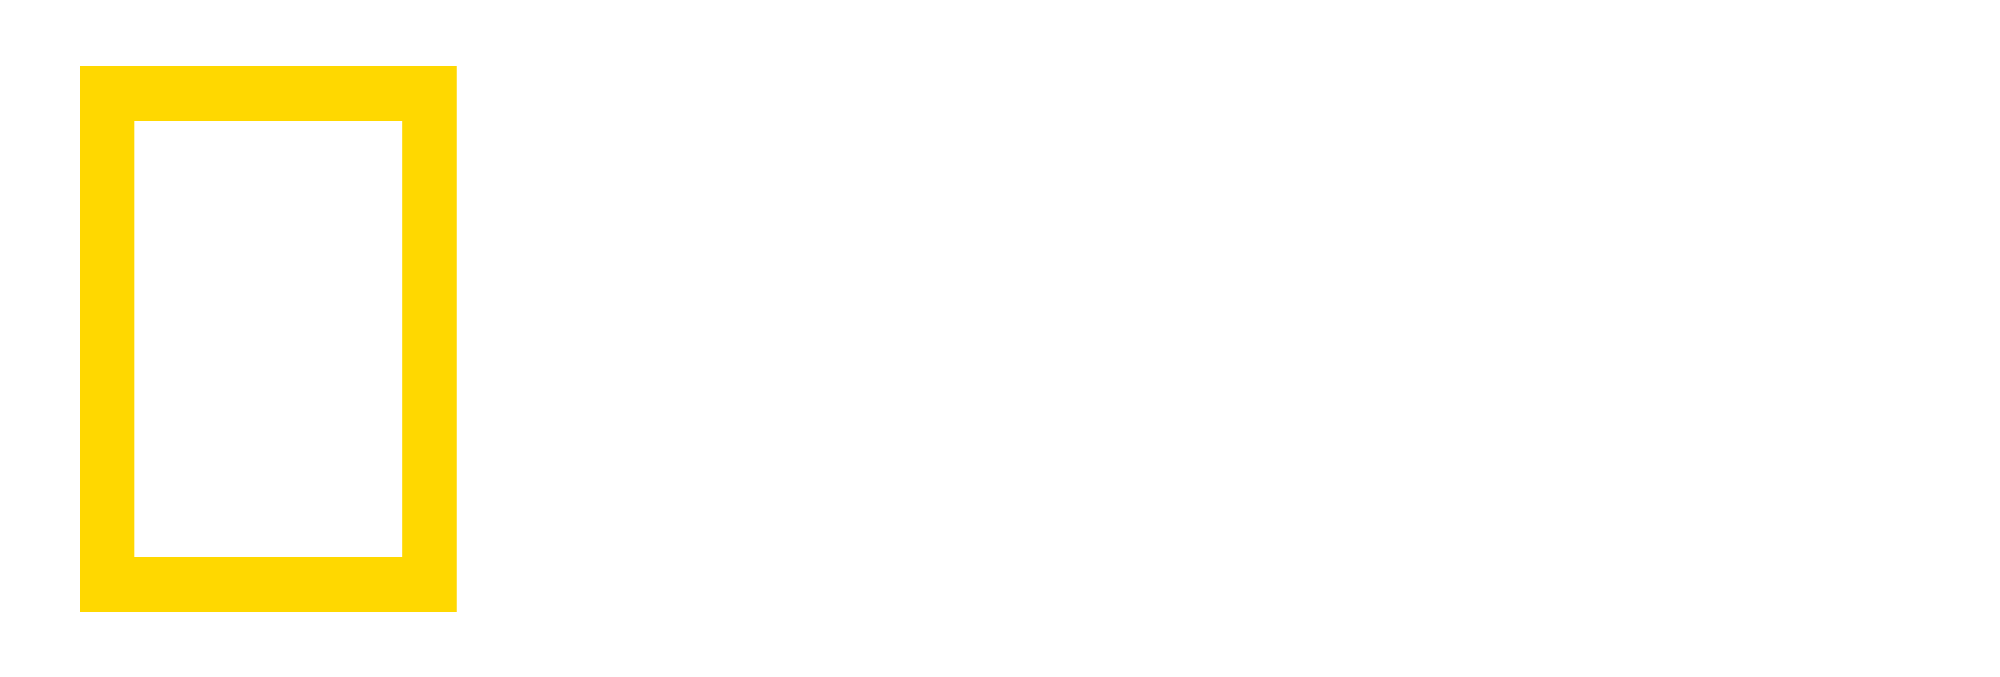 National Geographic Logo PNG - 105032